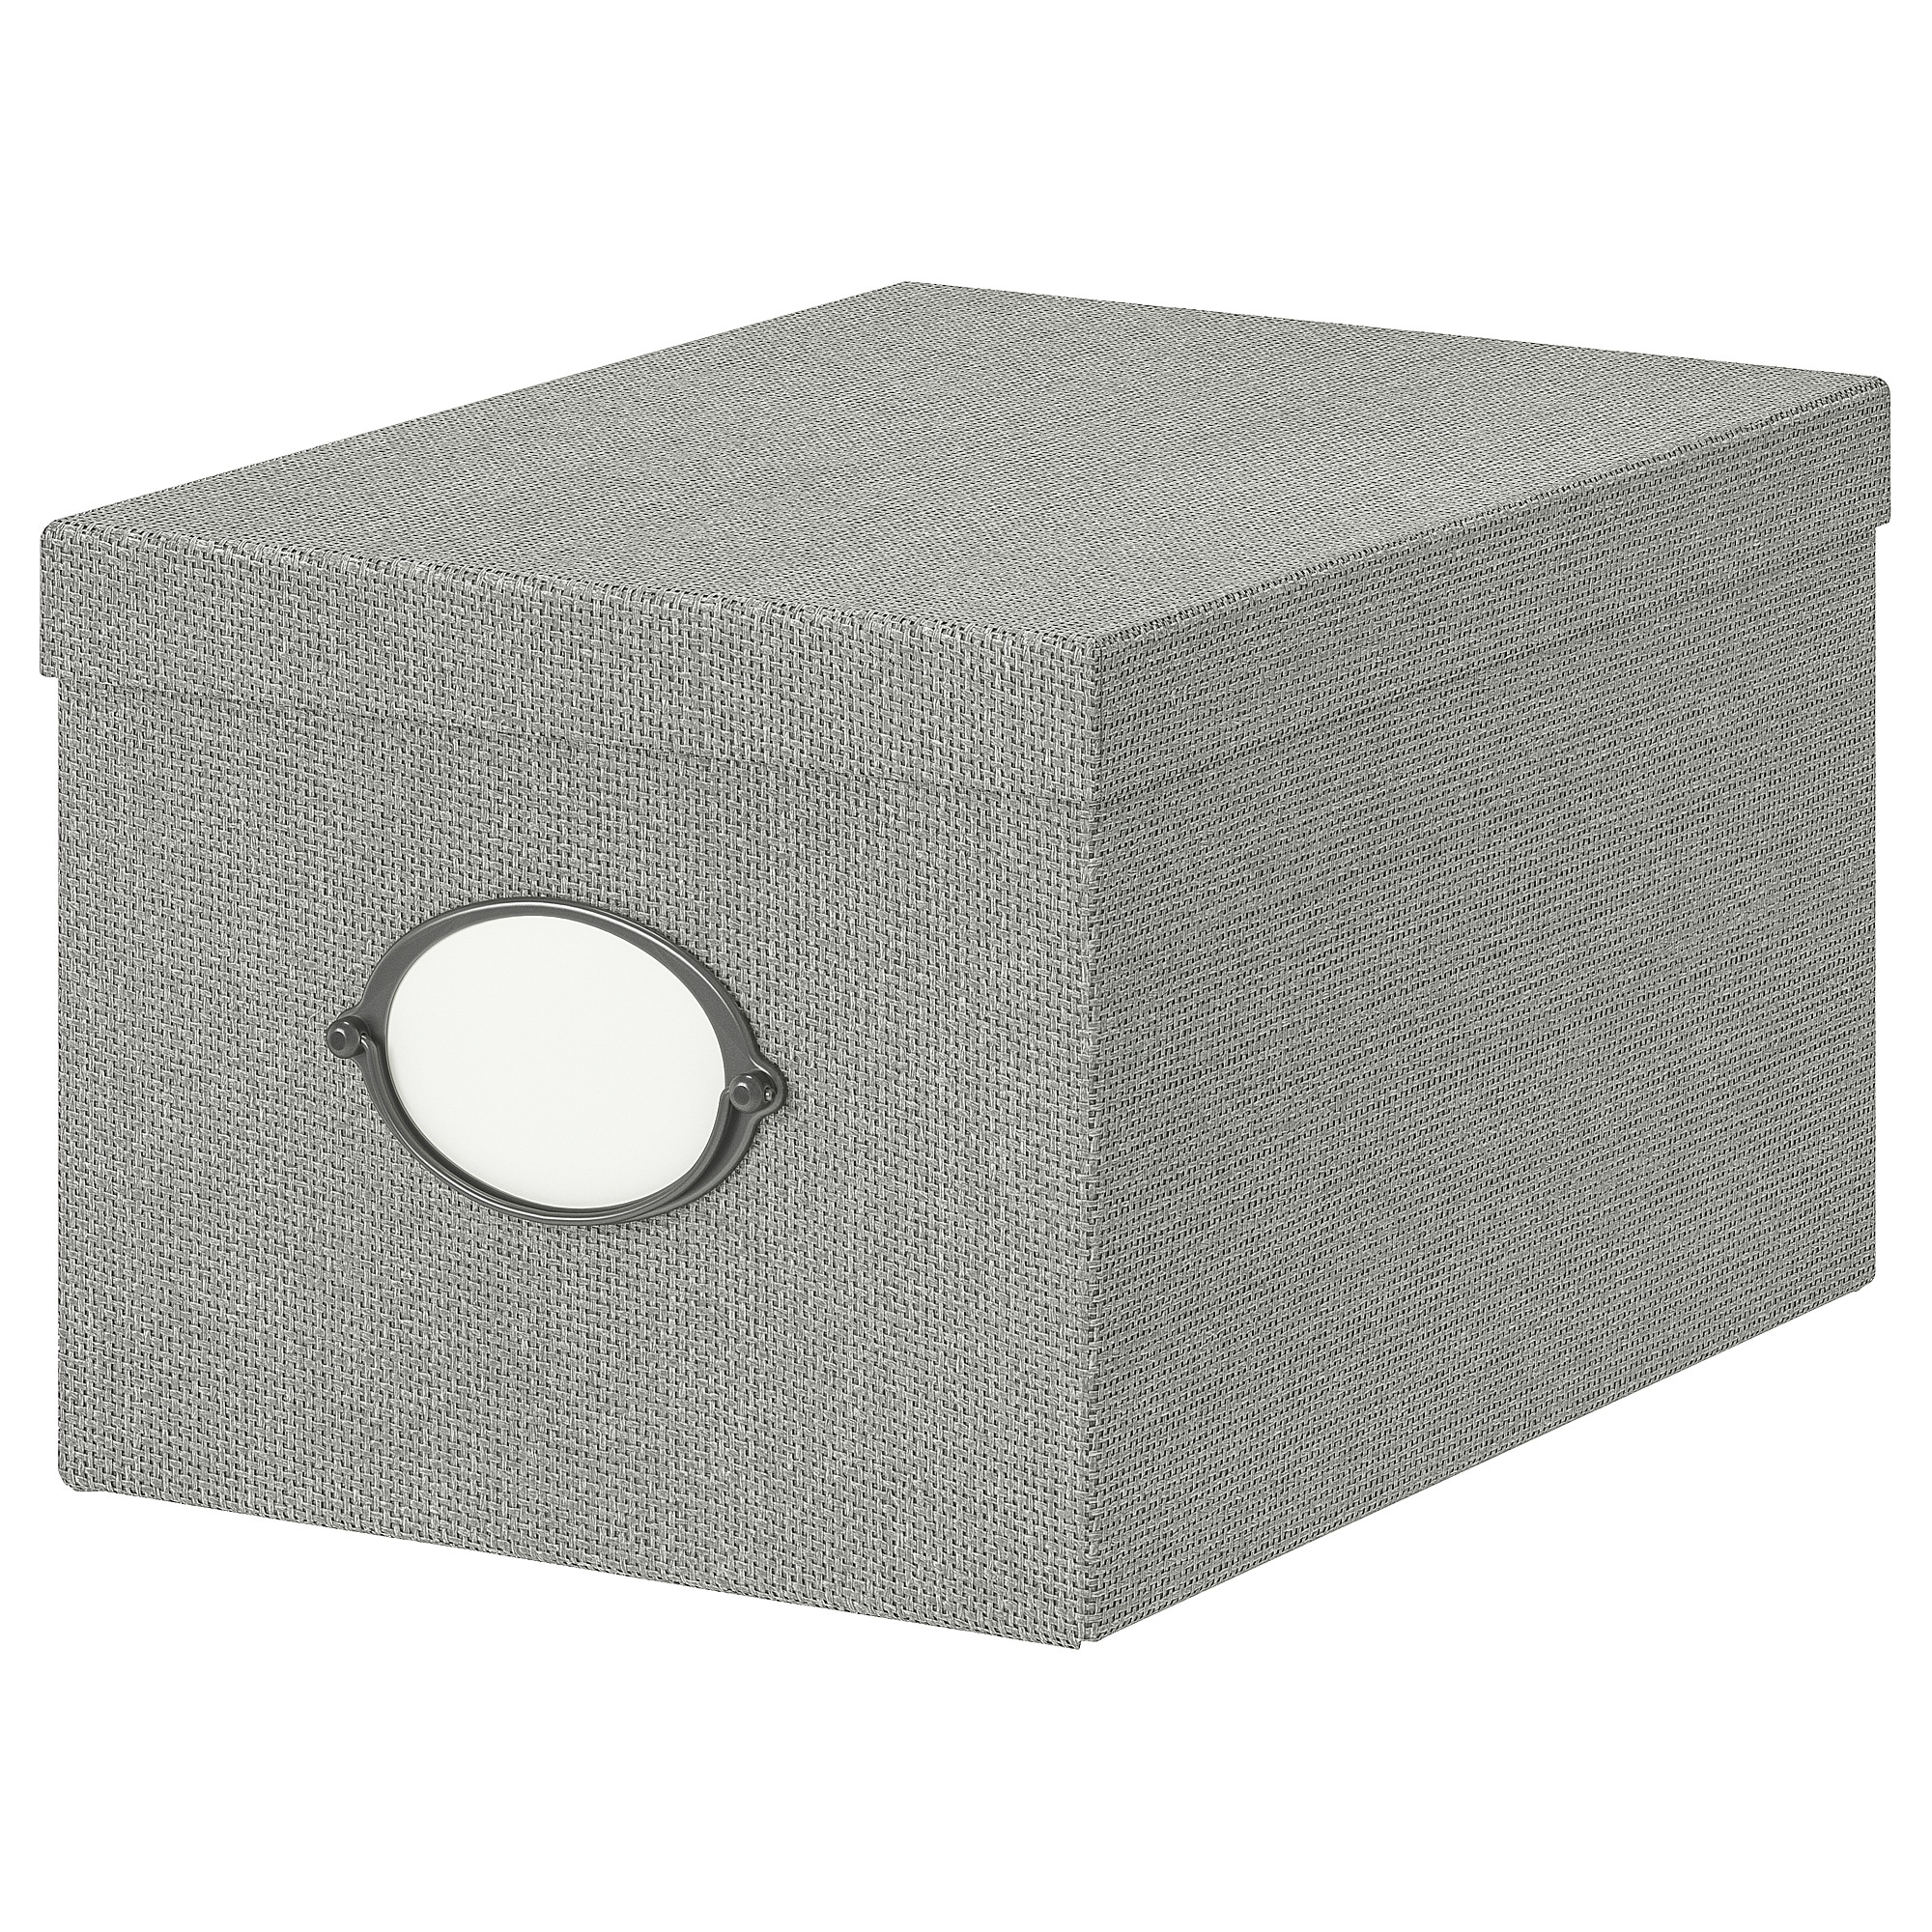 Beau KVARNVIK Storage Box With Lid, Gray